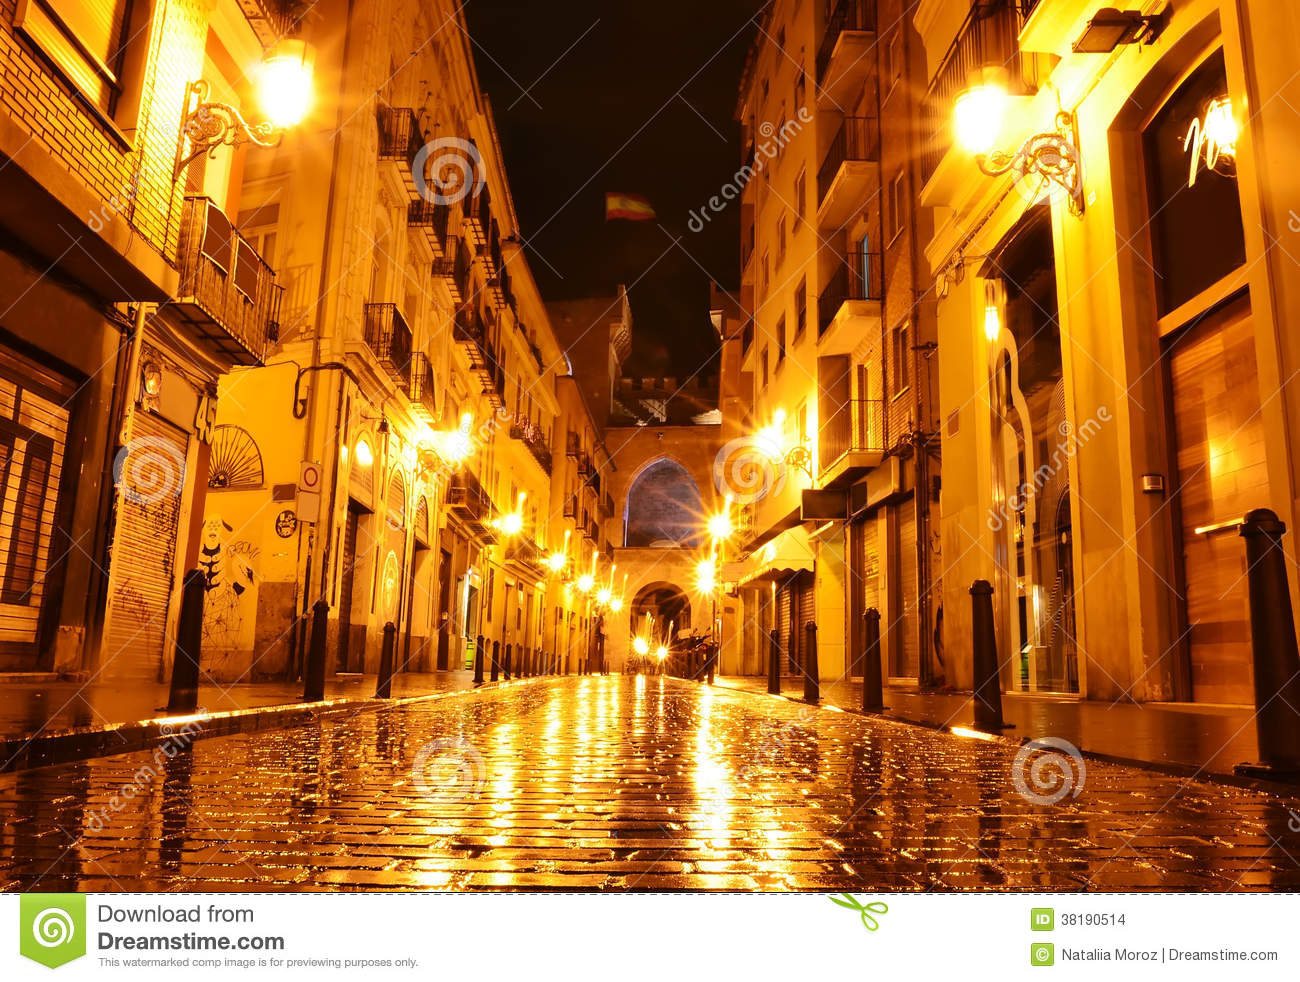 Free Wallpaper Old Cars City Street In Night Valencia Spain Stock Photo Image